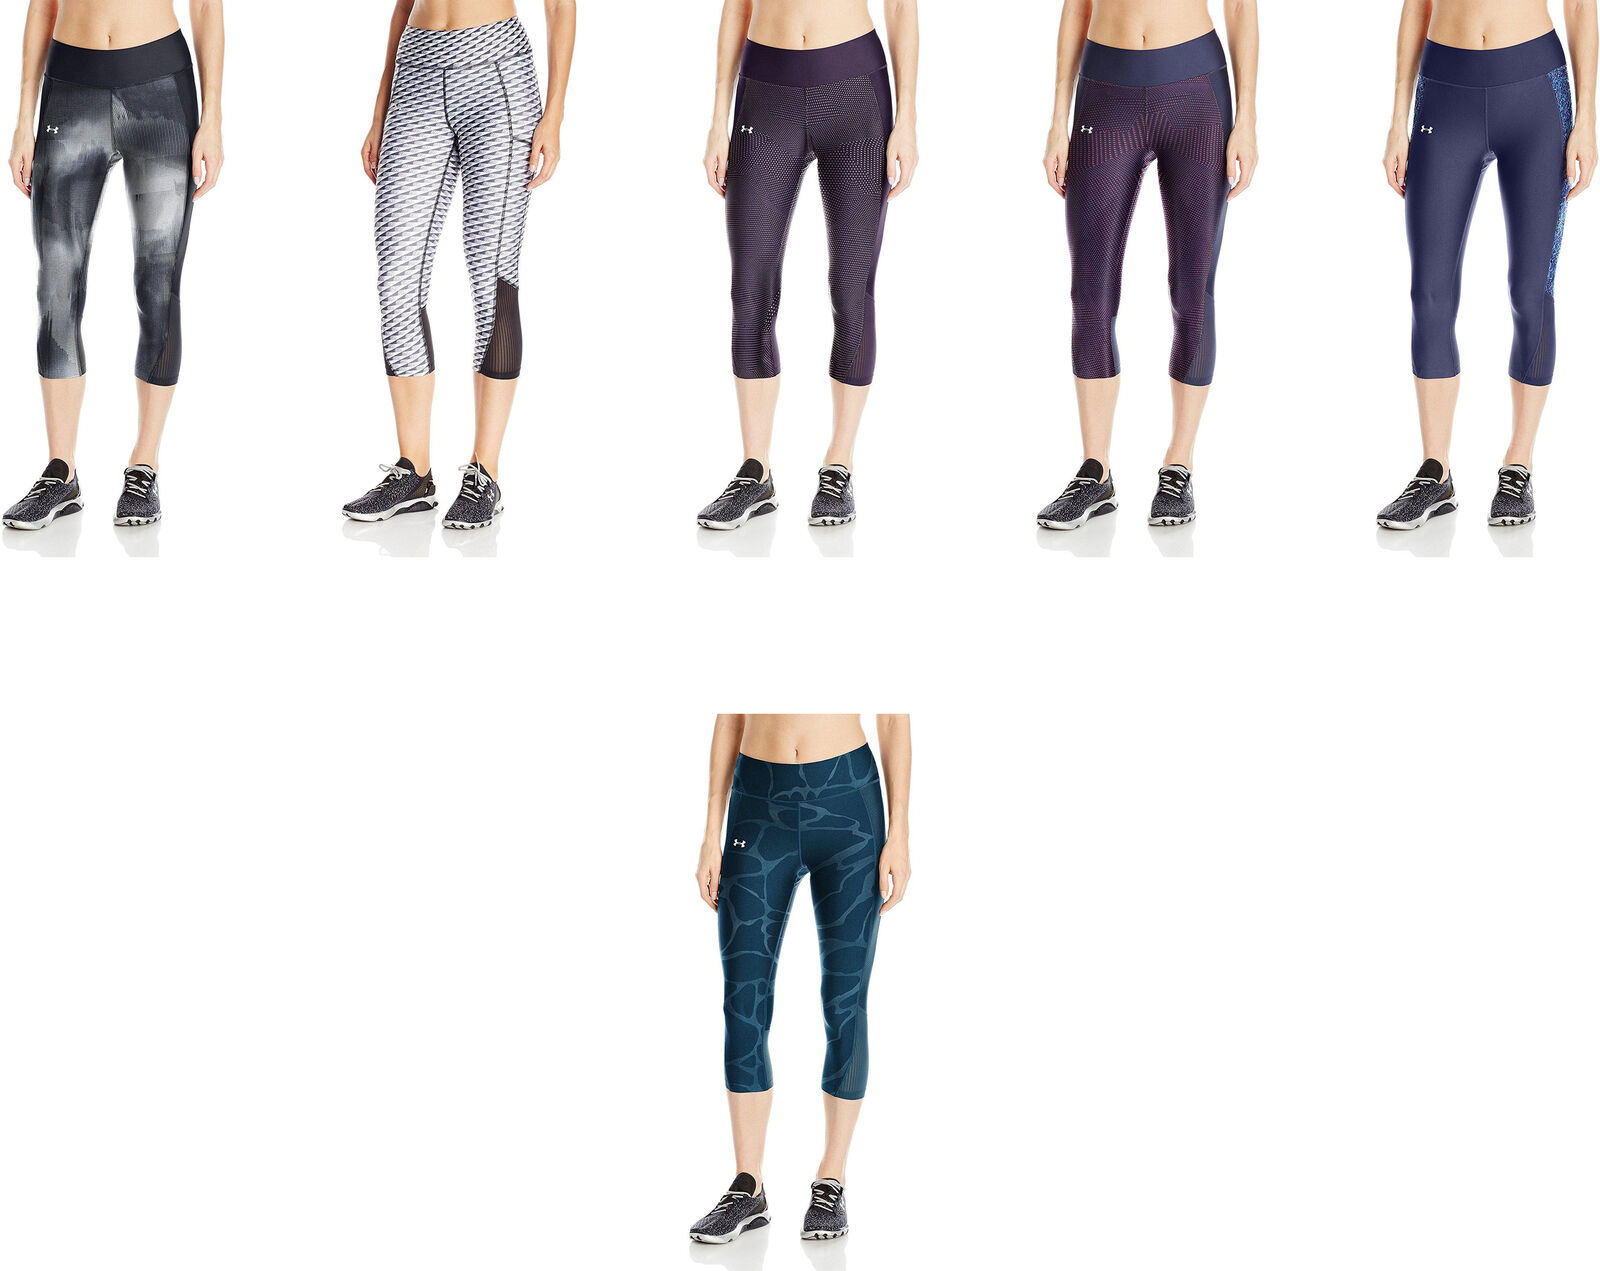 0834074afa48fa Details about Under Armour Women's Fly-By Printed Capri, 8 Colors